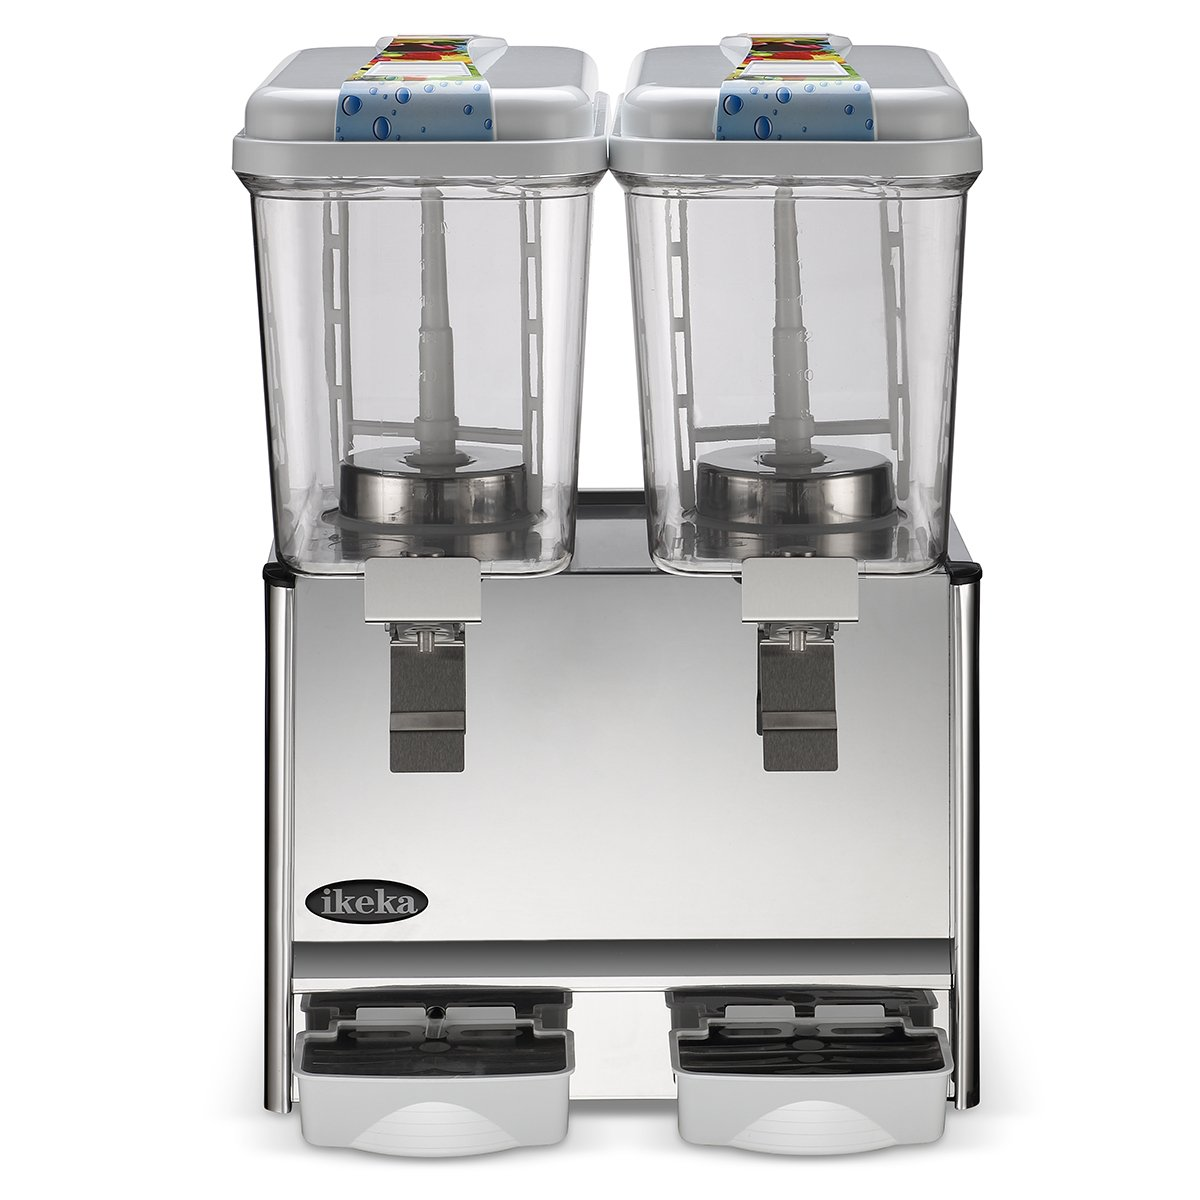 IKEKA 9.5 Gallon Commercial Juice Dispenser, Automatic Cold Drink Beverage Machine, Stainless Steel Cold Beverage Dispenser with 2 Tanks, 4.75 Gallon Per Tank, 300W